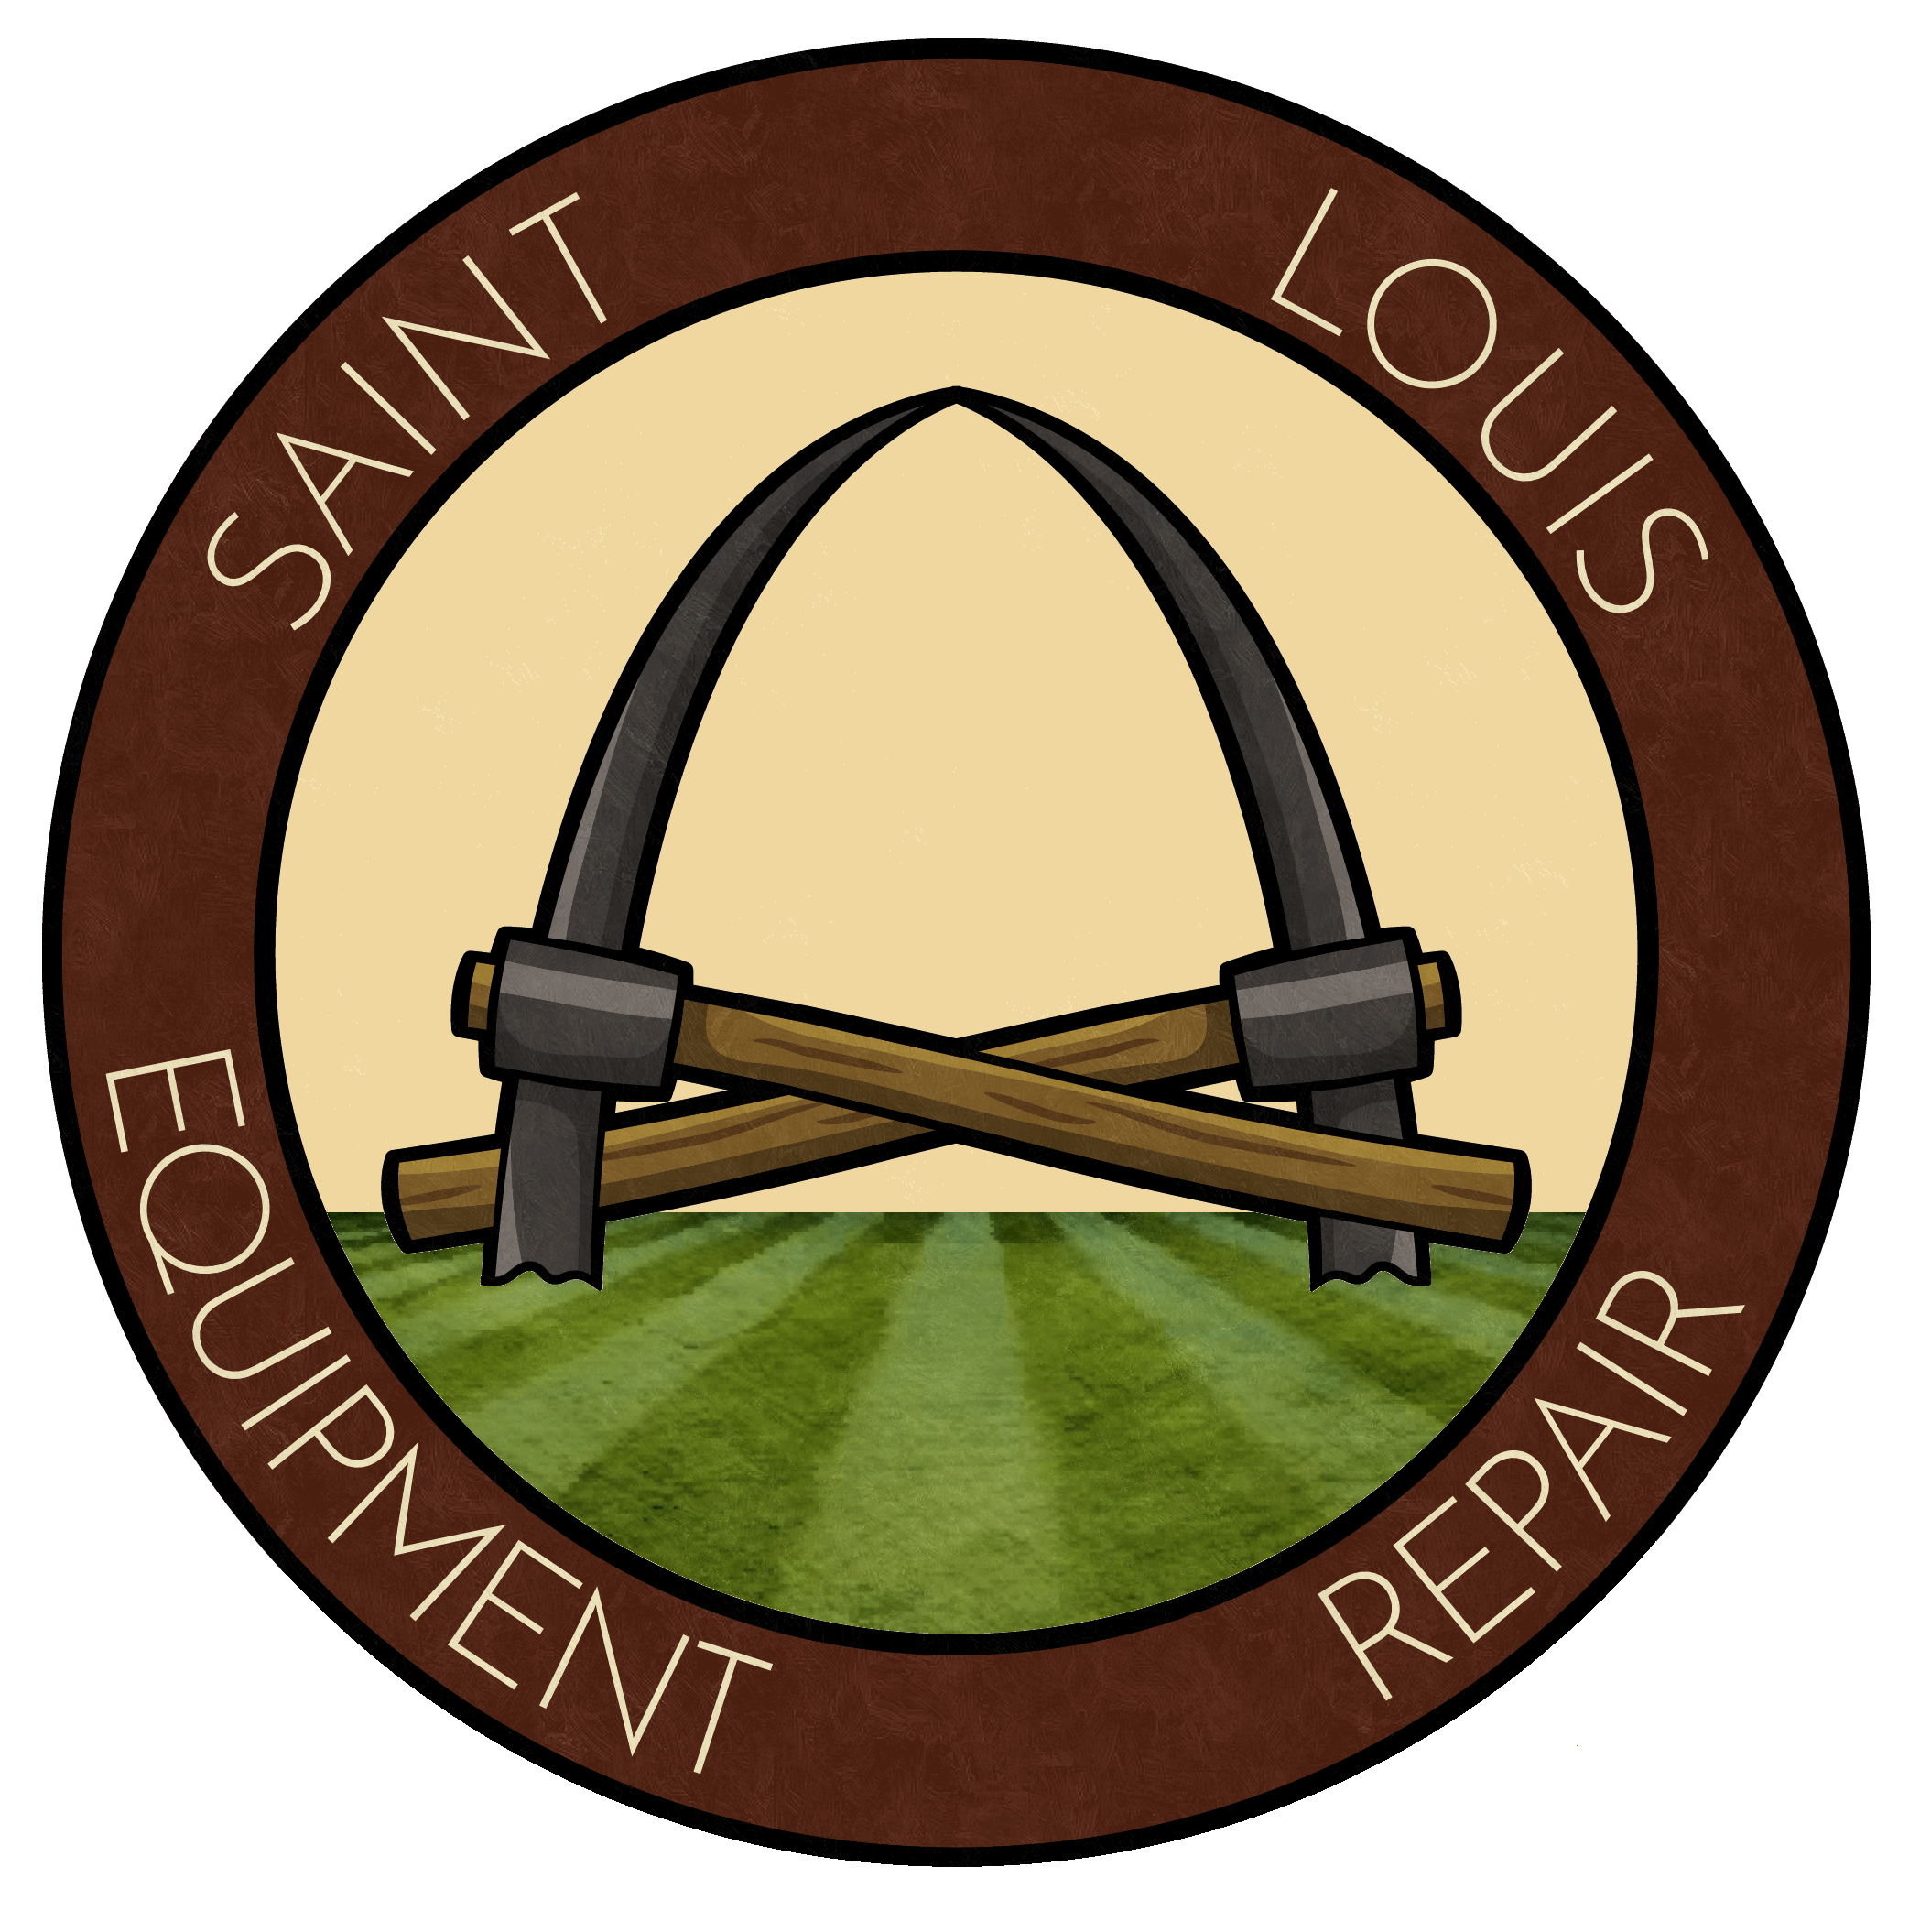 St. Louis Lawn Mower Repair